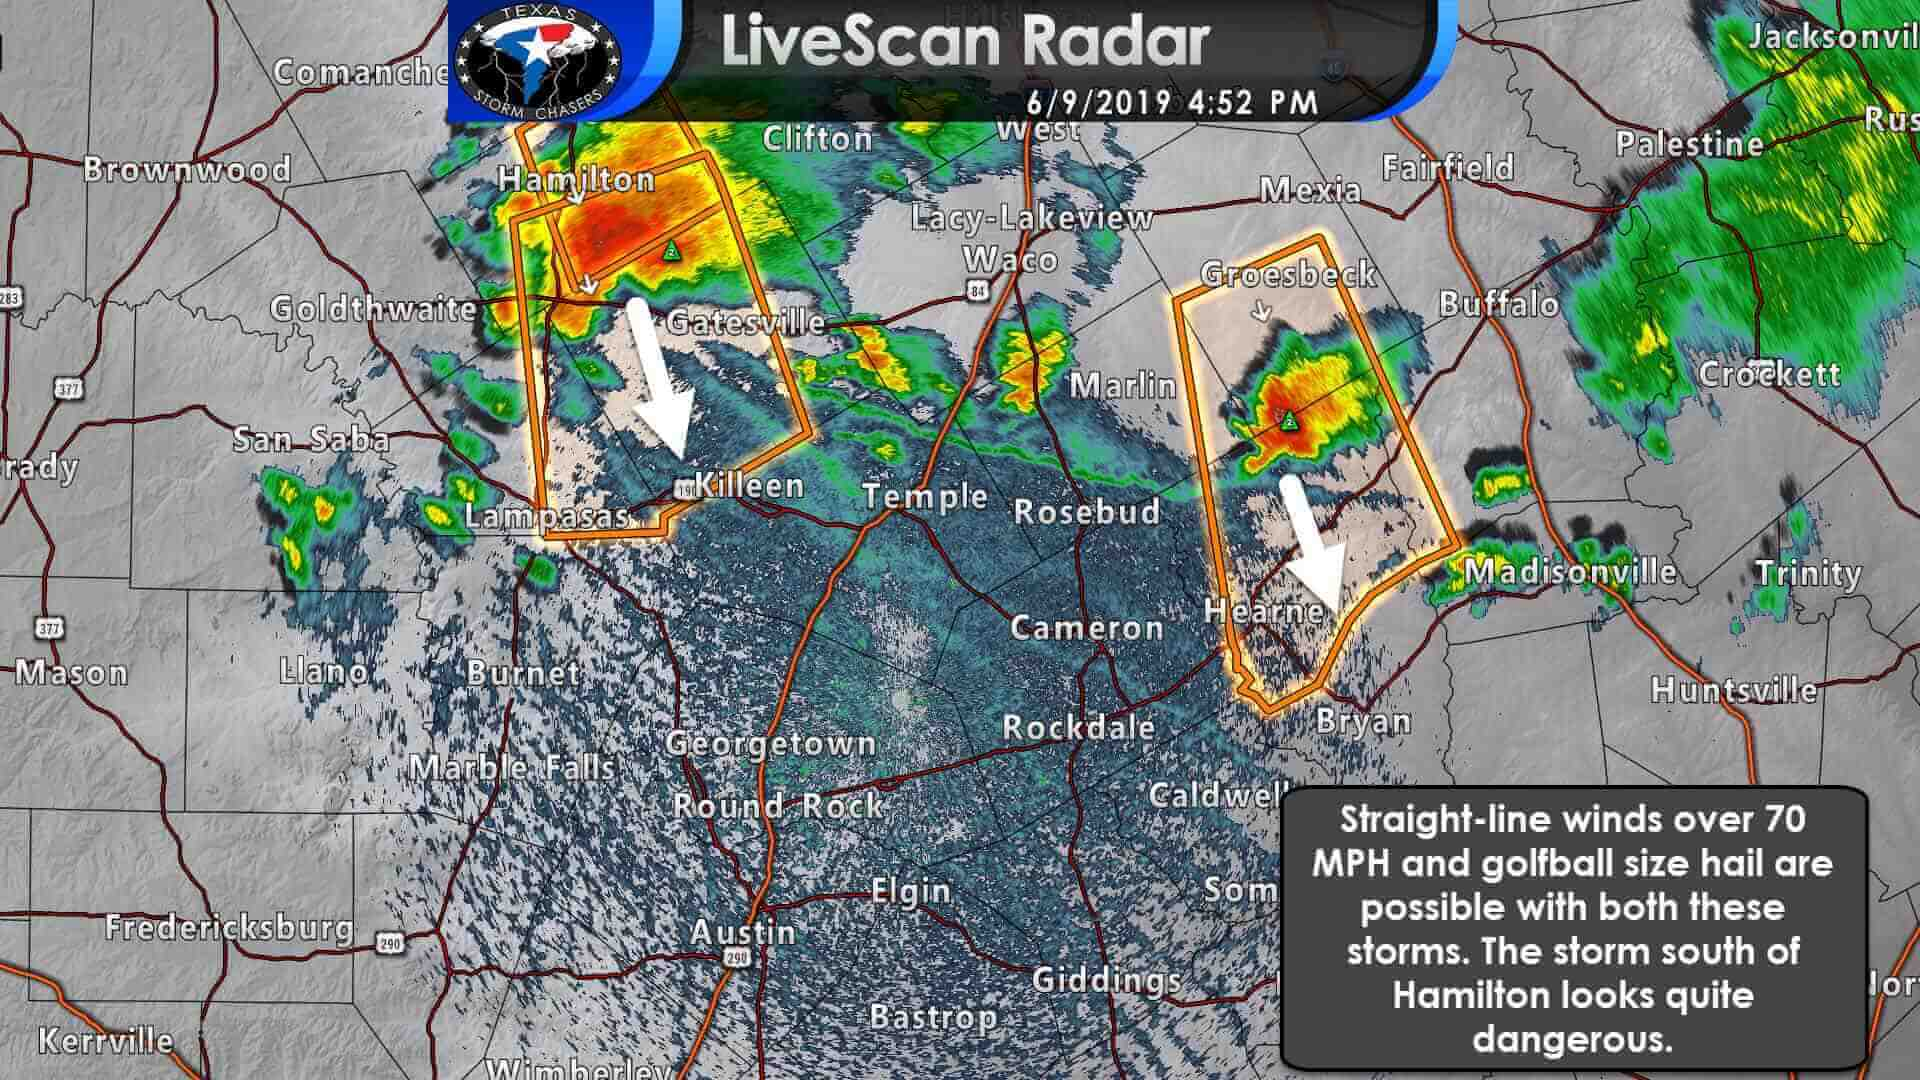 5 PM Severe Weather Update - Dangerous storms moving toward